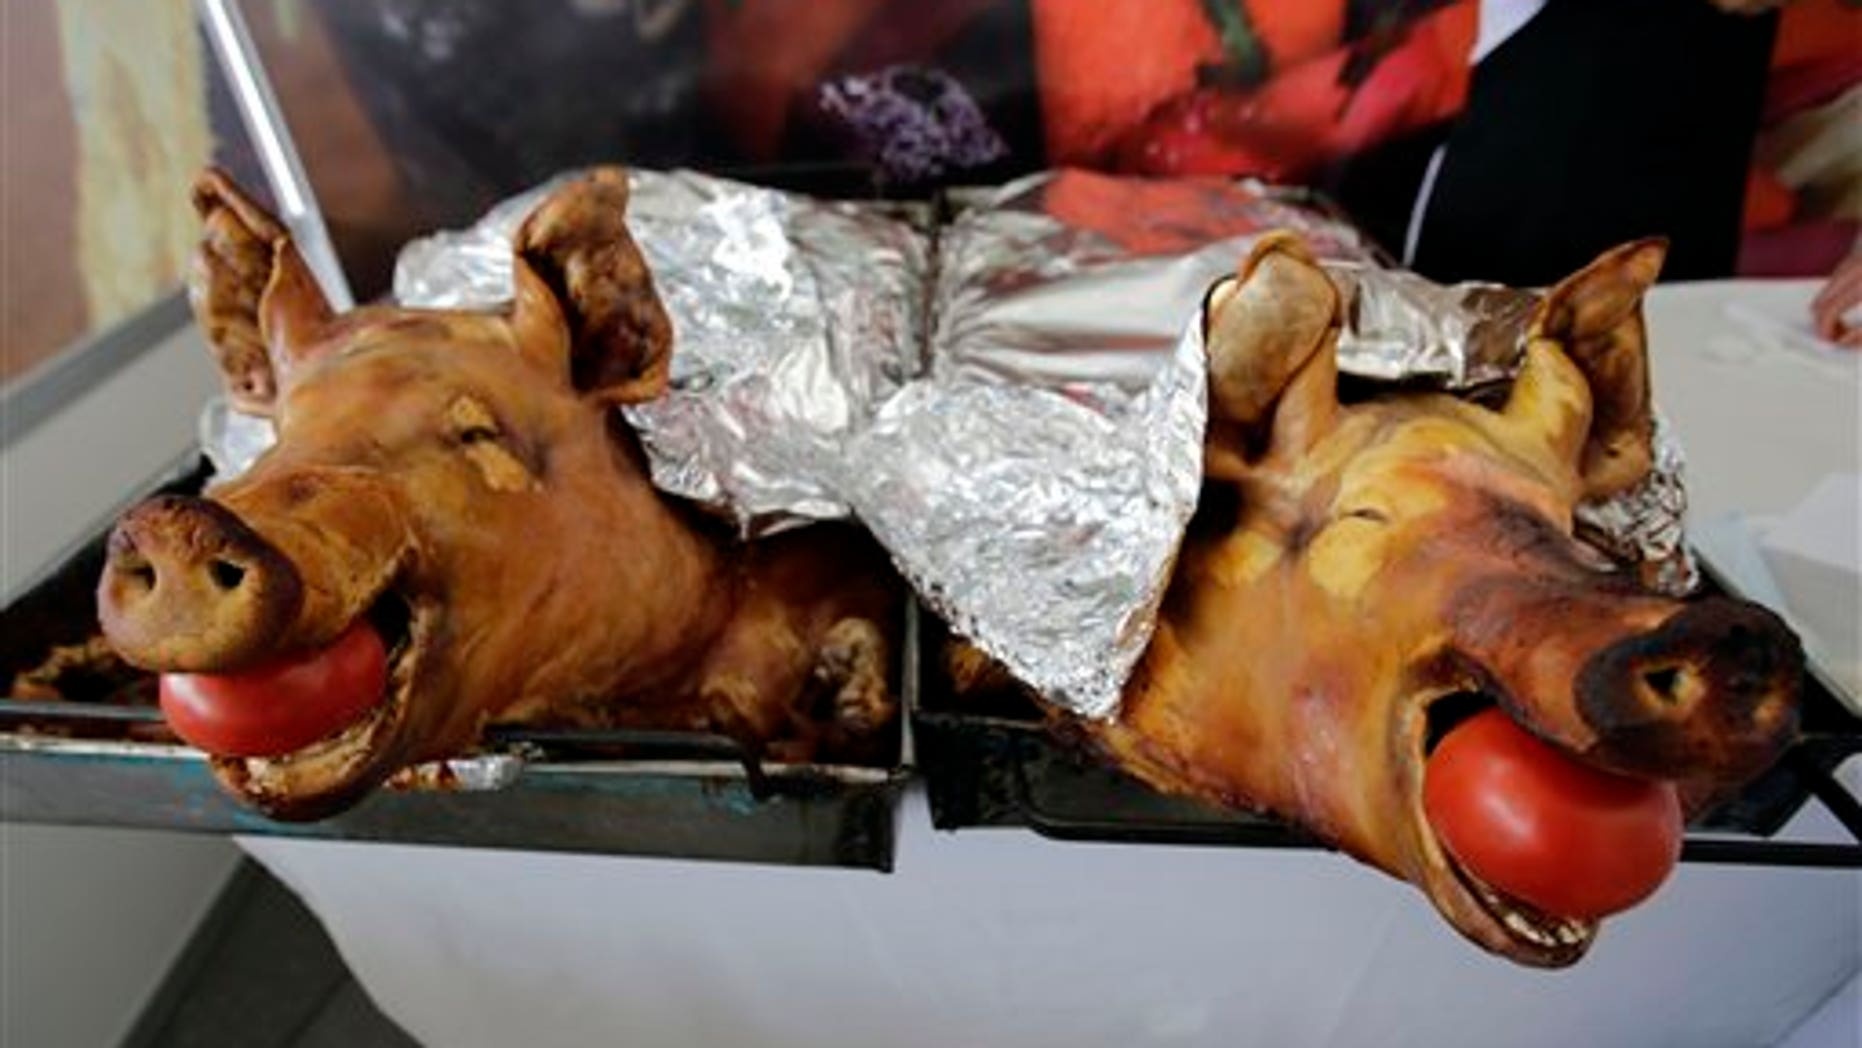 """In this Aug. 17, 2014 photo, slow-roasted pork known as """"Hornado,"""" a traditional dish consisting of marinated, slow-roasted pork, is presented before the judges of the national contest to choose the country's best """"Hornado,"""" in Riobamba, Ecuador. After years of disputes within the different regions of Ecuador, over who could make the best """"Hornado,"""" the championship on Sunday finally settled the issue. (AP Photo/Dolores Ochoa)"""